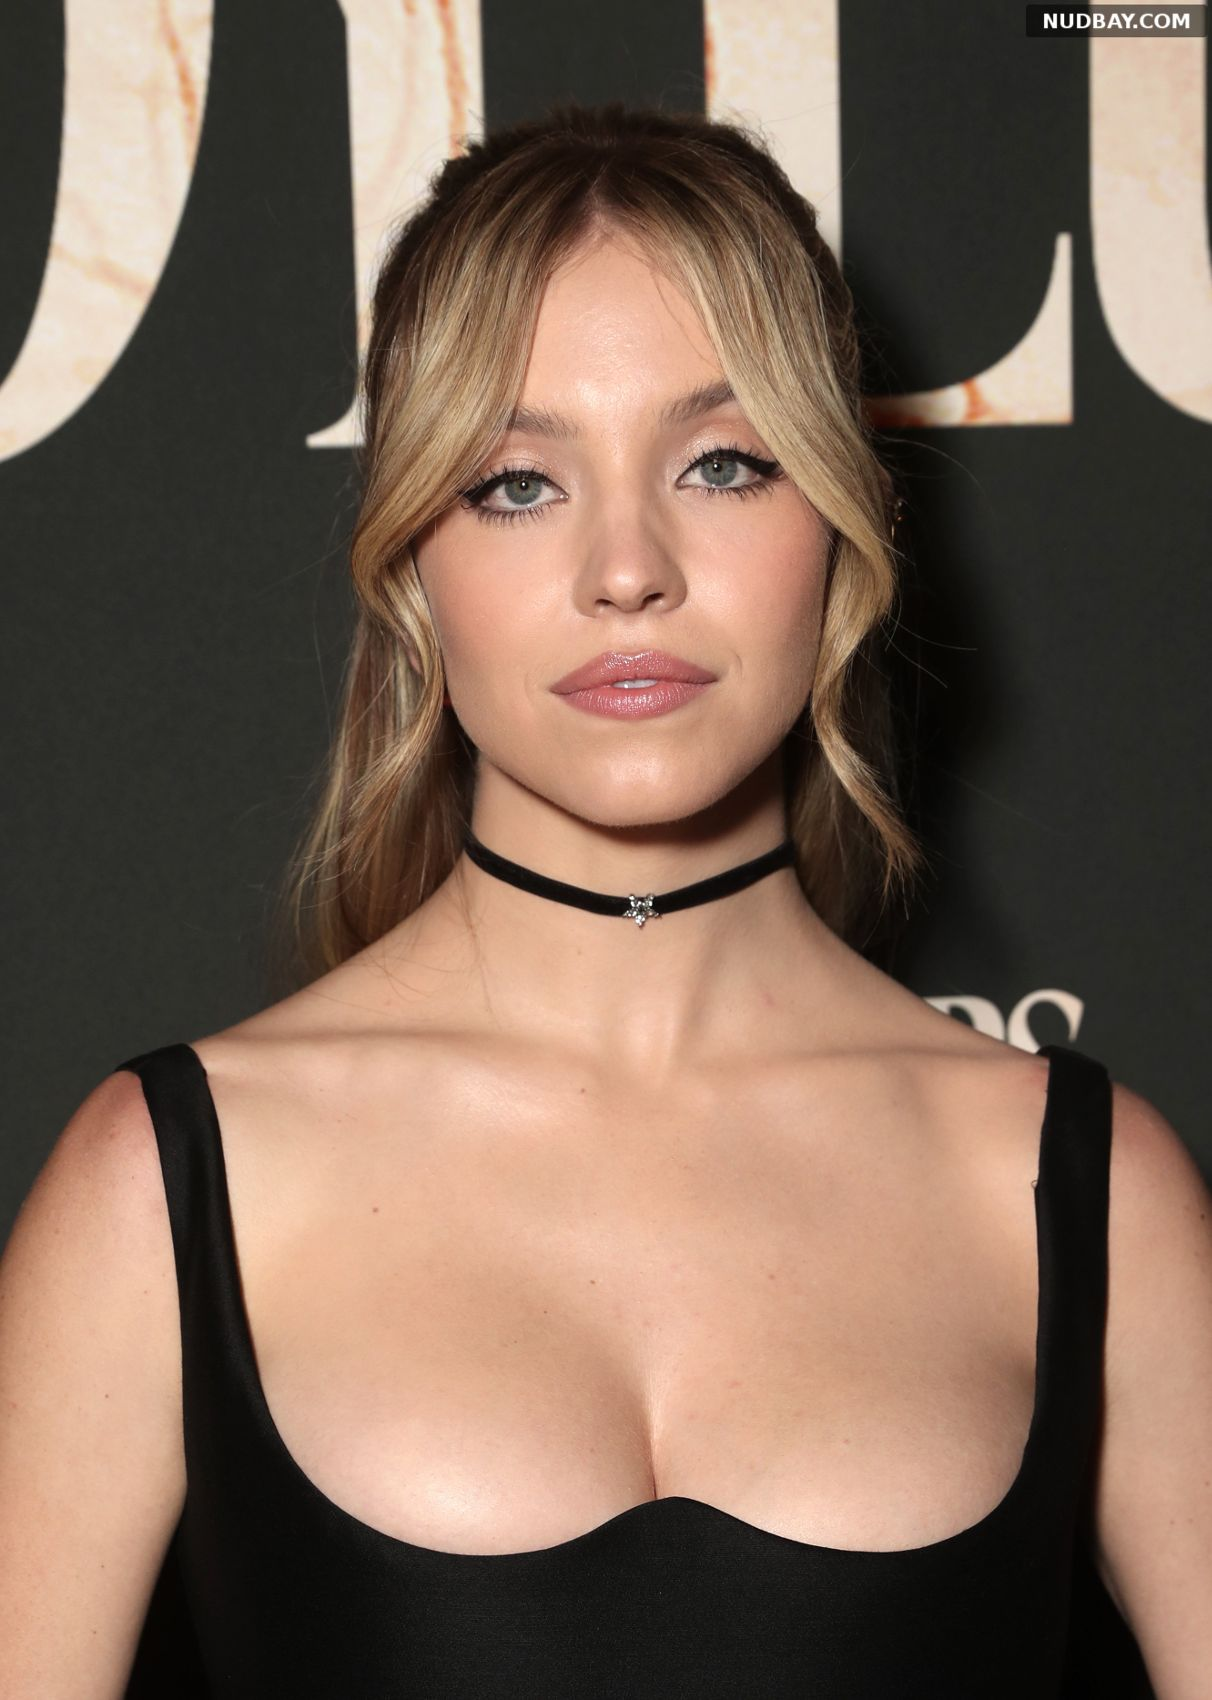 Sydney Sweeney Cleavage At the premiere of The Voyeurs in Los Angeles Aug 24 2021